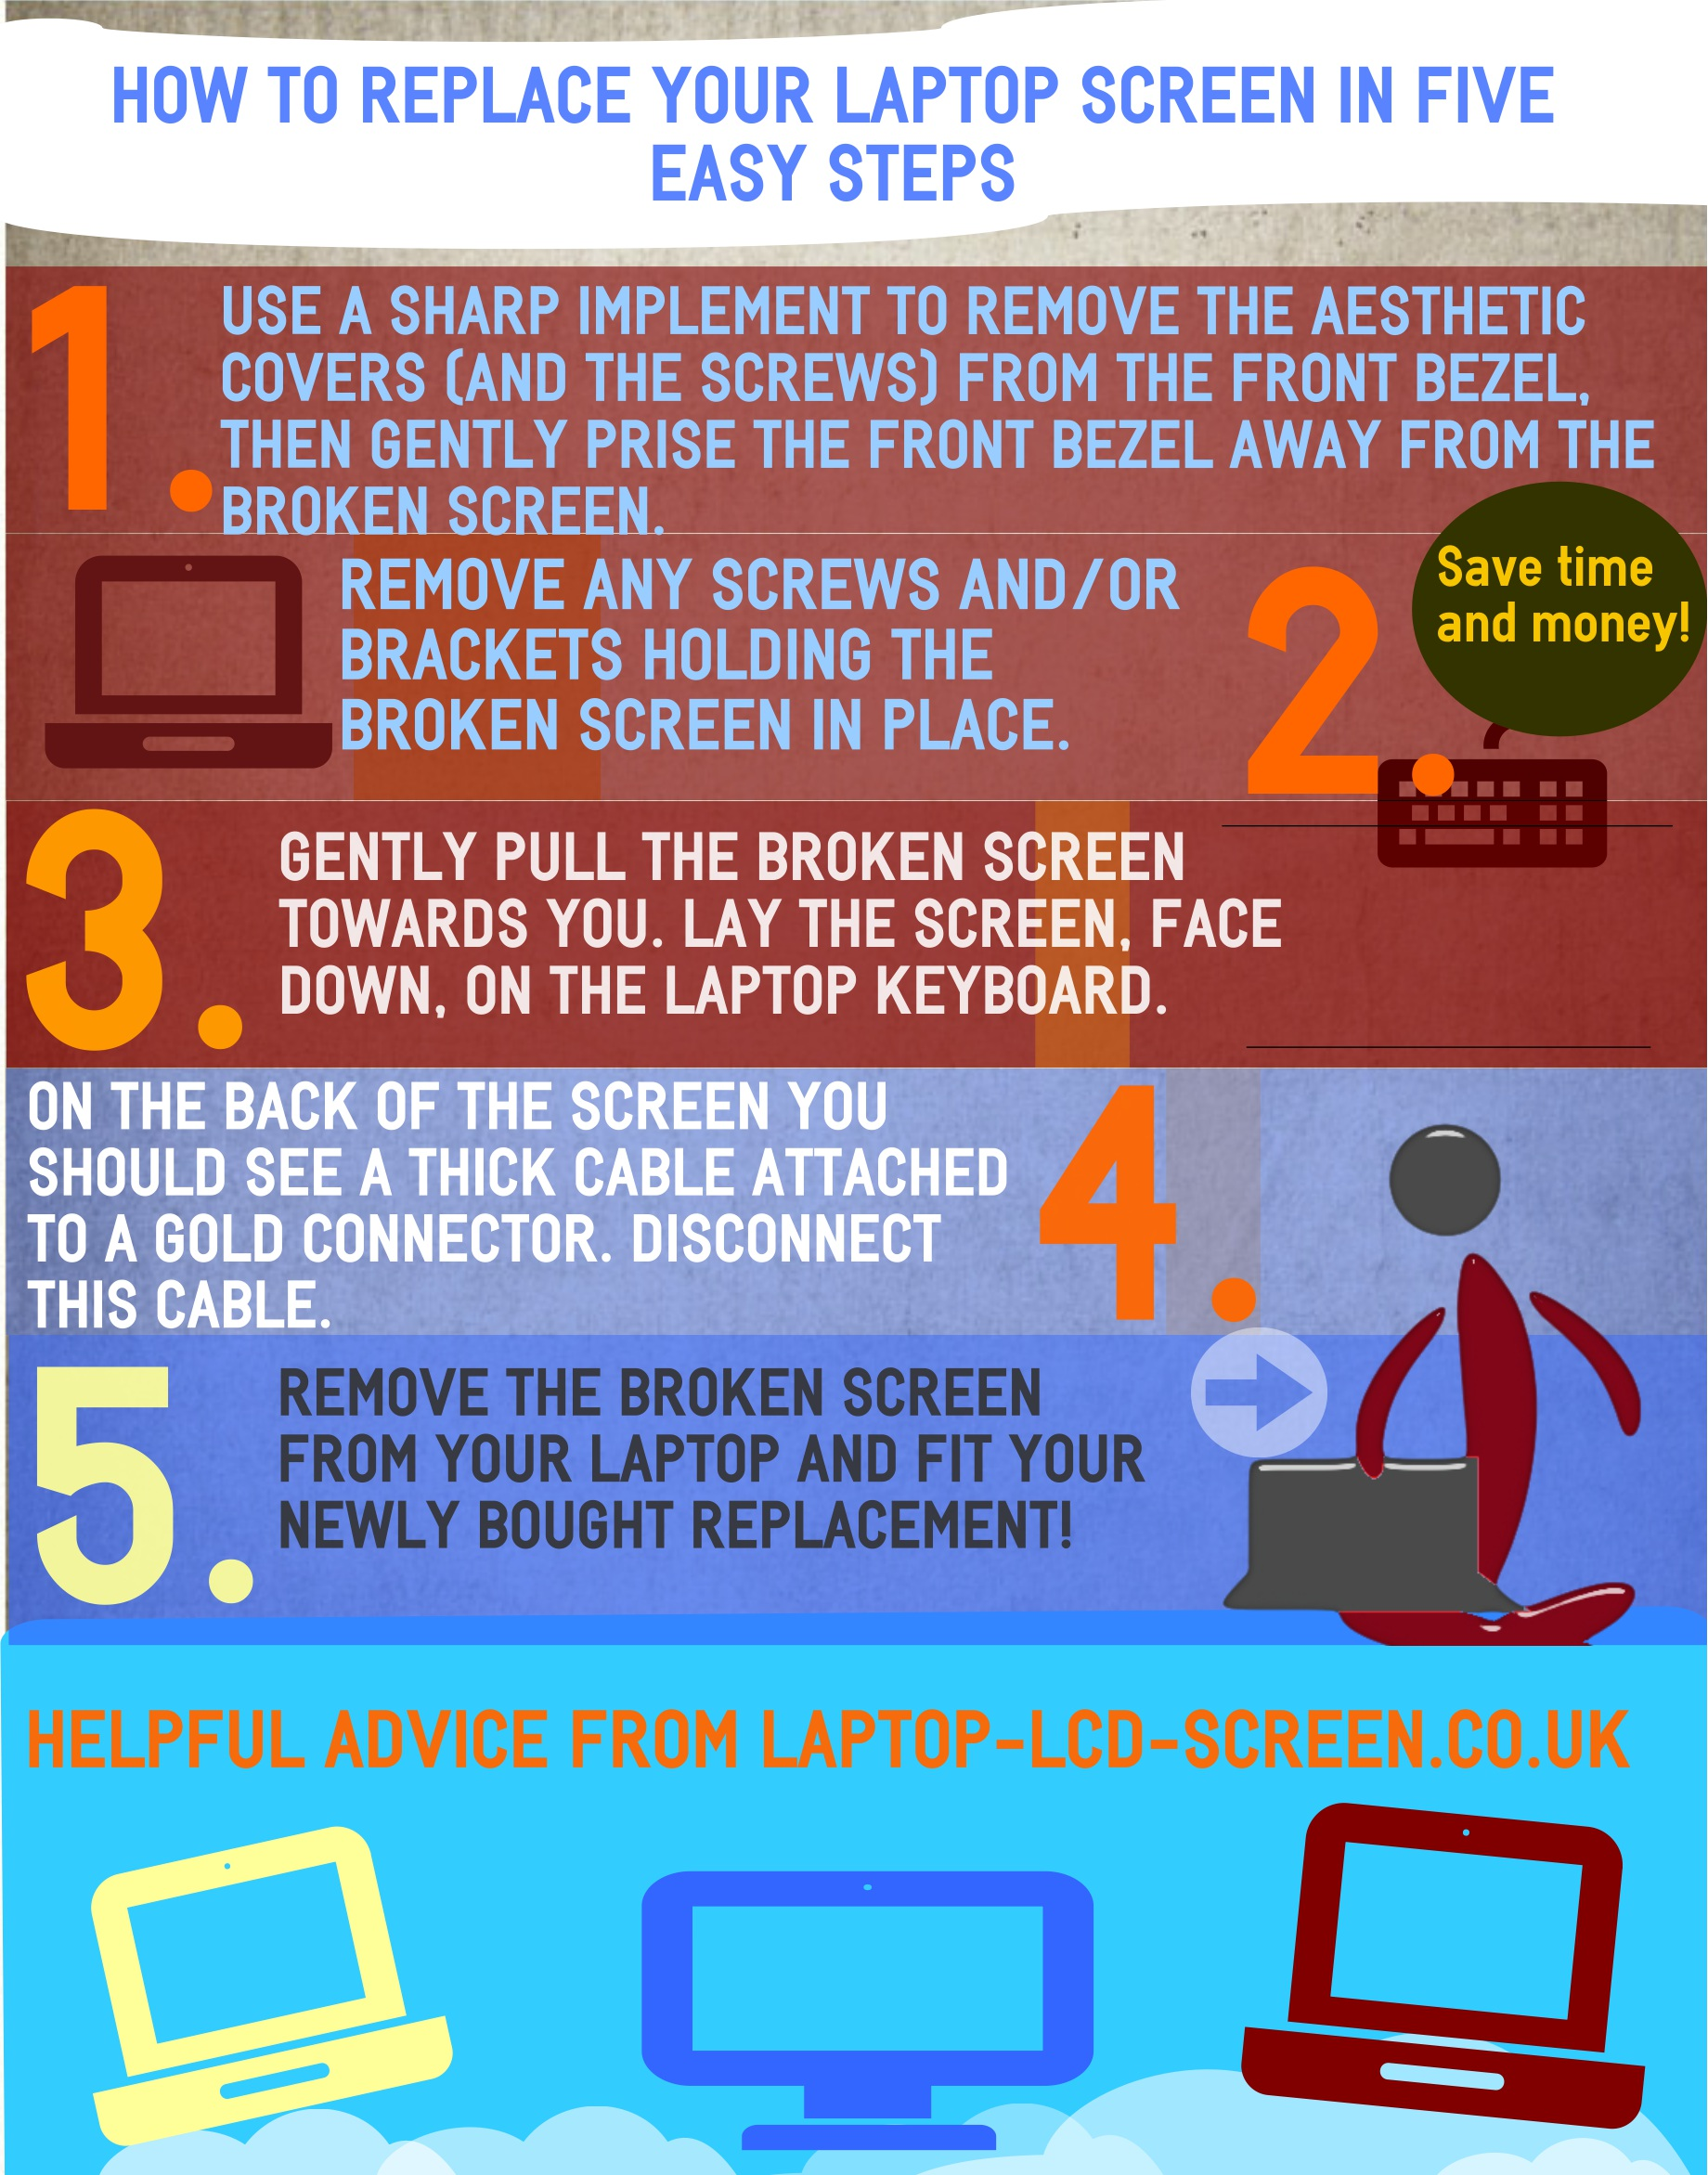 How to replace a laptop screen